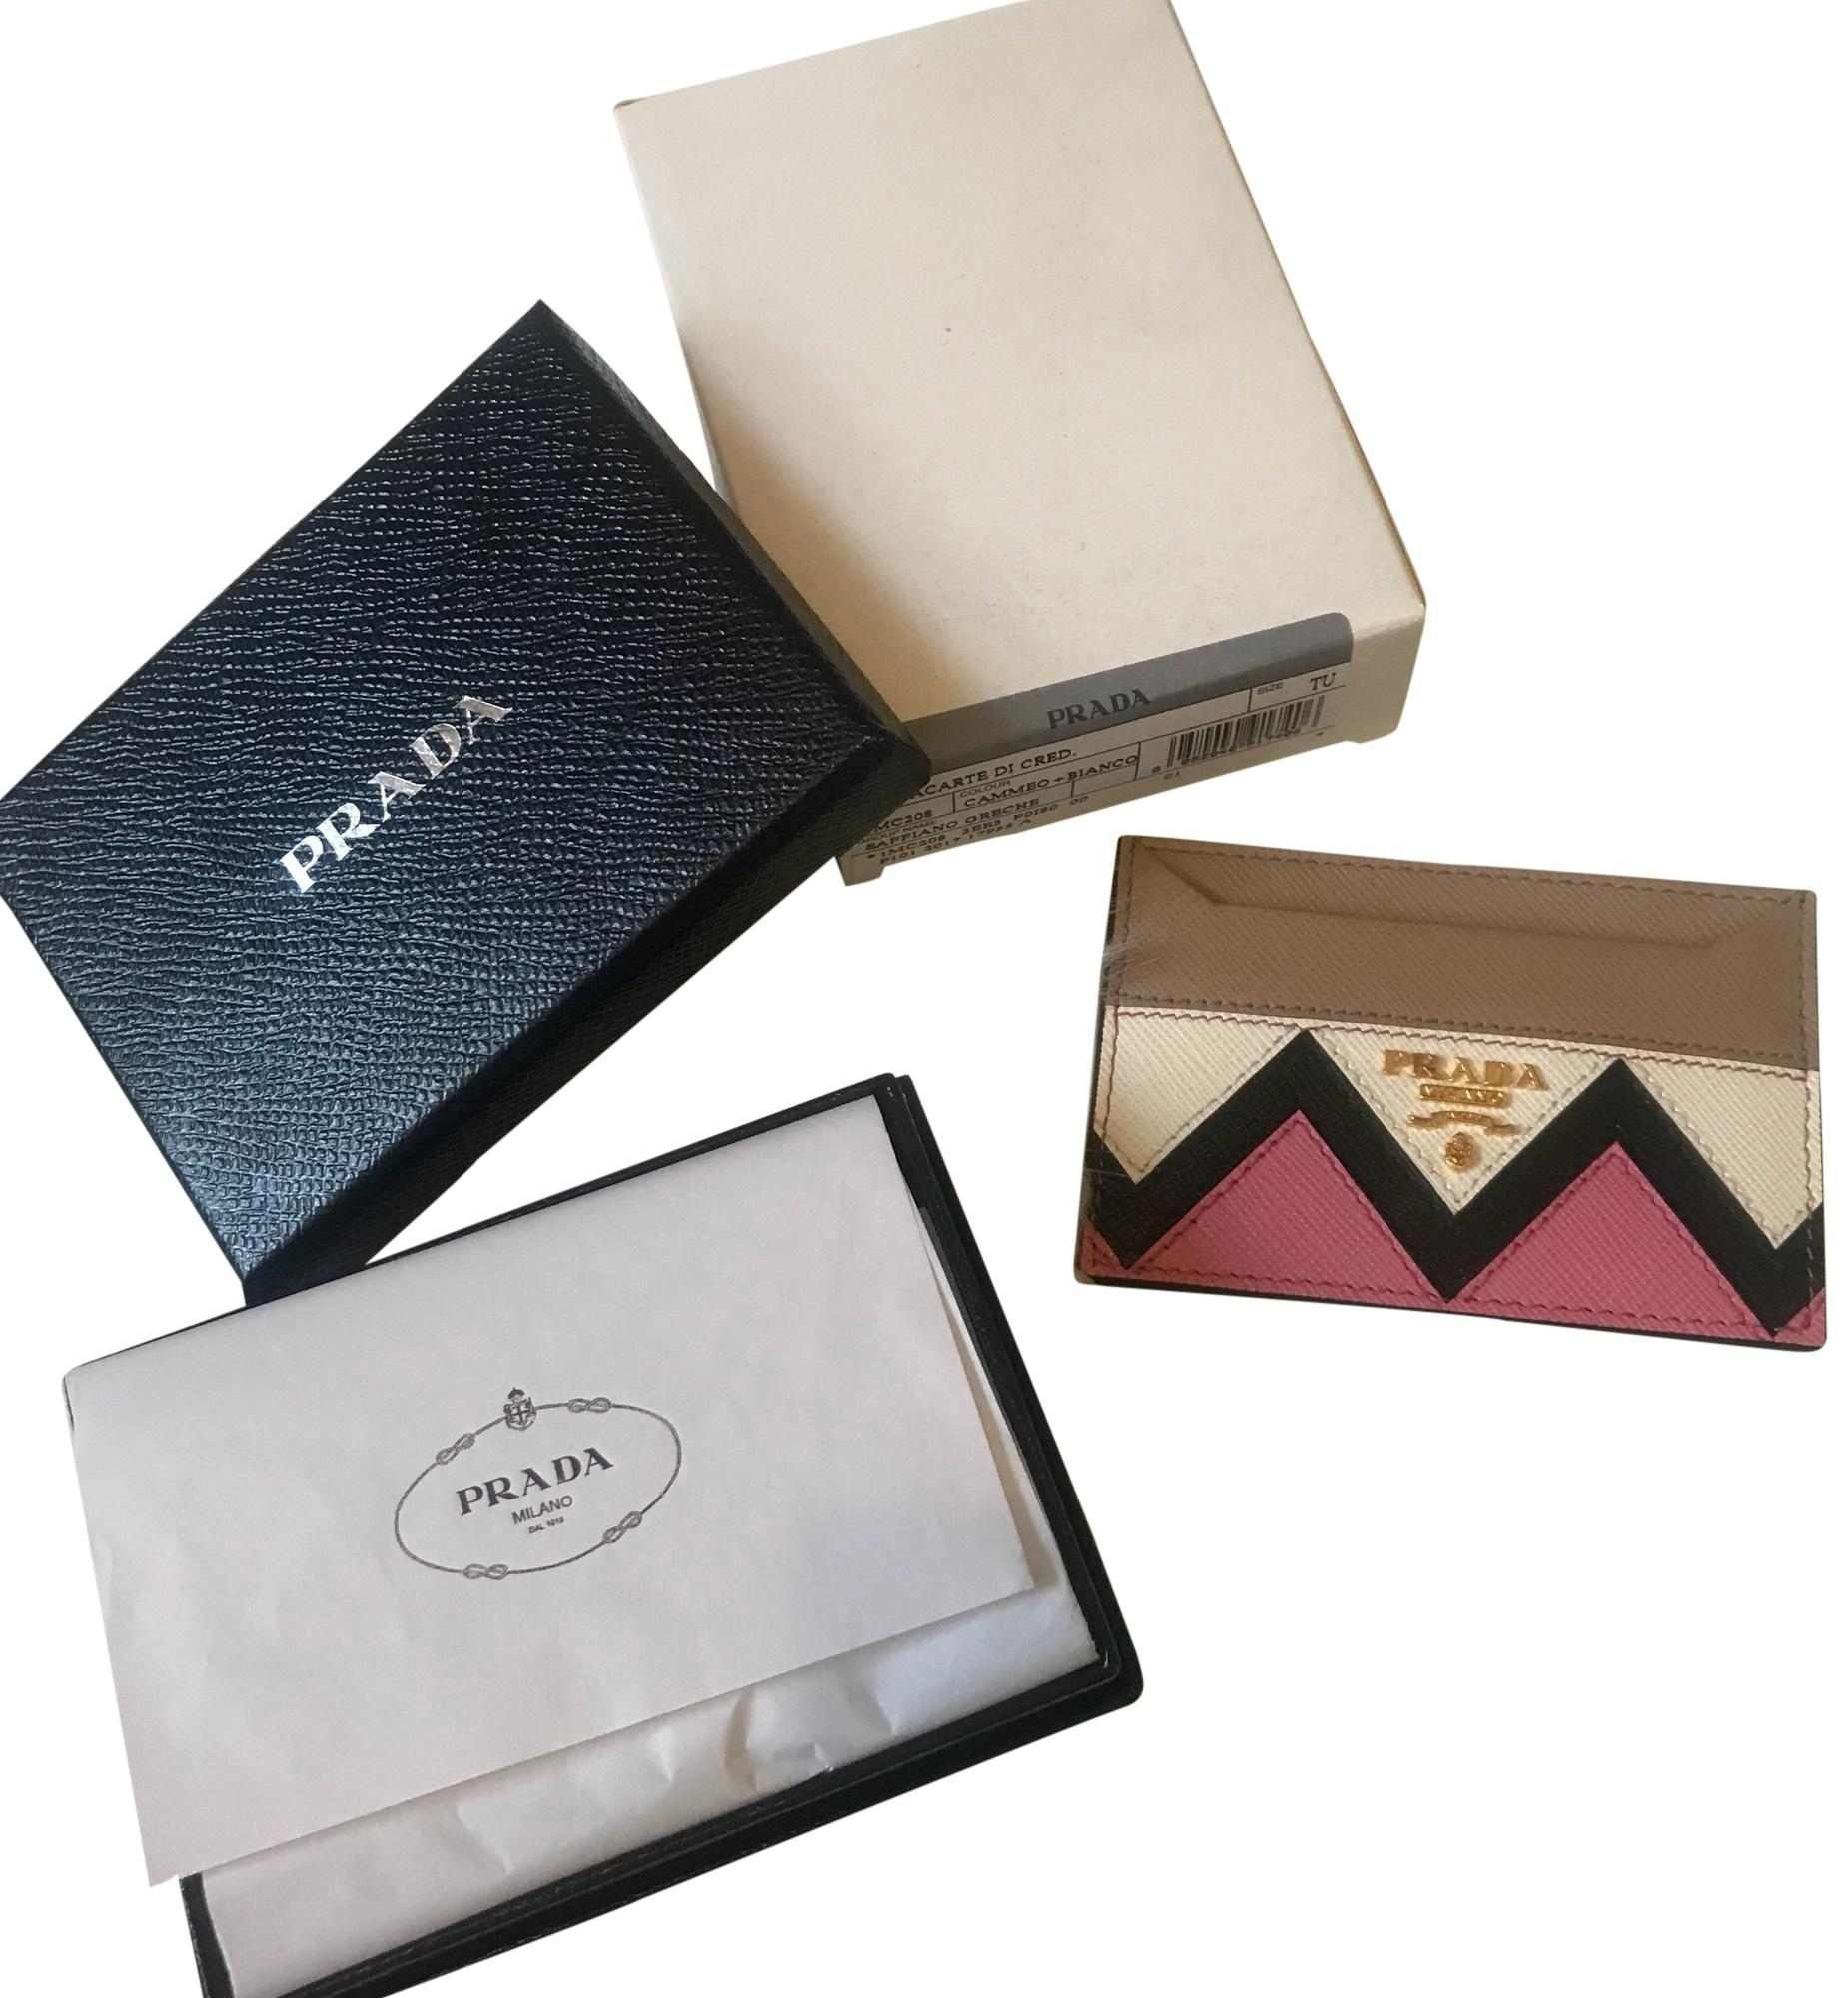 62e70a8eb42a0 ... wholesale prada wallets on sale up to 70 off at tradesy 652a0 d5c49